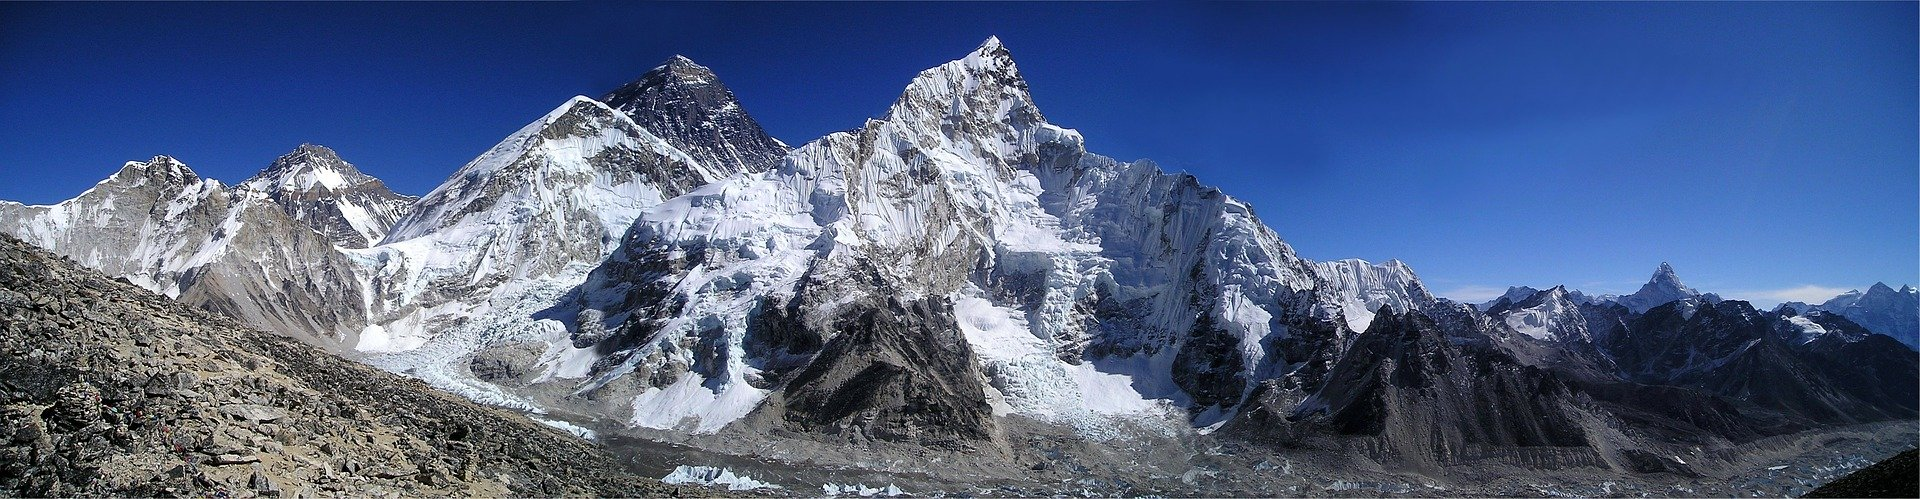 Top of the world Mt. Everest Expedition the highest mountains on the Earth